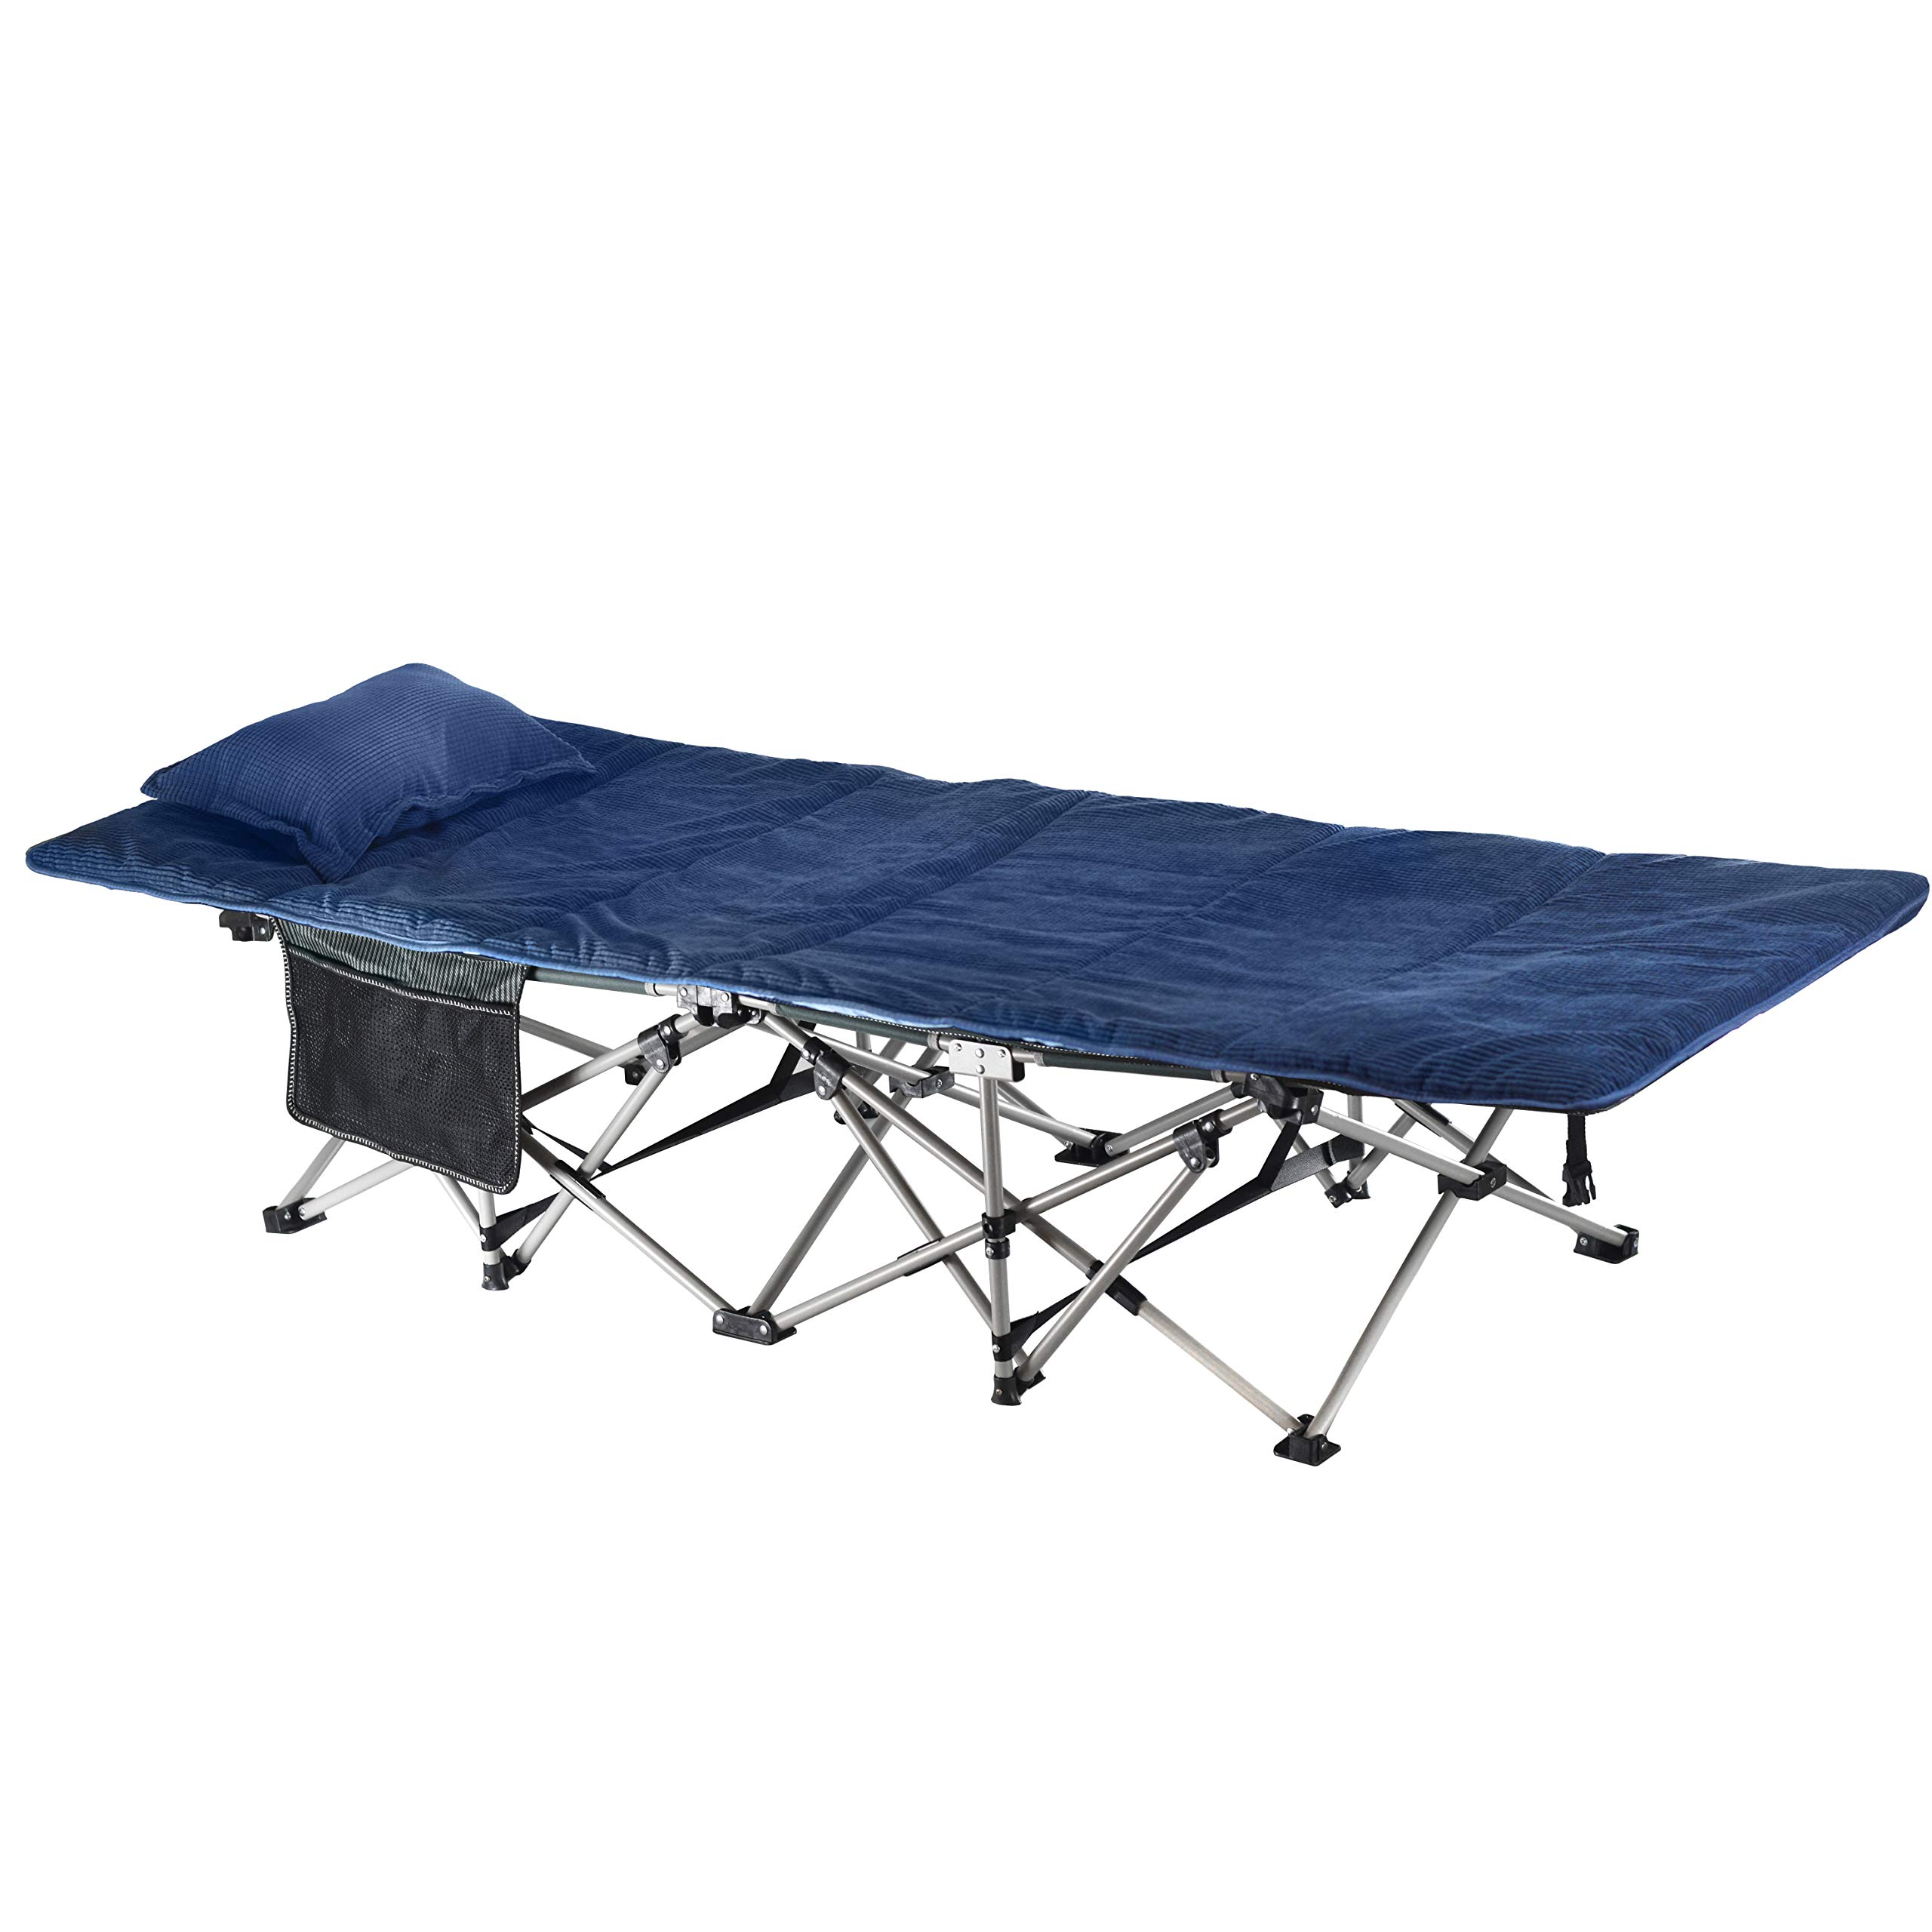 ELTOW Cozy Folding Camping Cot - Heavy-Duty Portable Collapsible Sleeping Bed with Pillow and Mattress - Superior Camping Gear with Strong Steel Frame and 1680D Oxford Fabric - Supports 400 Pounds by ELTOW